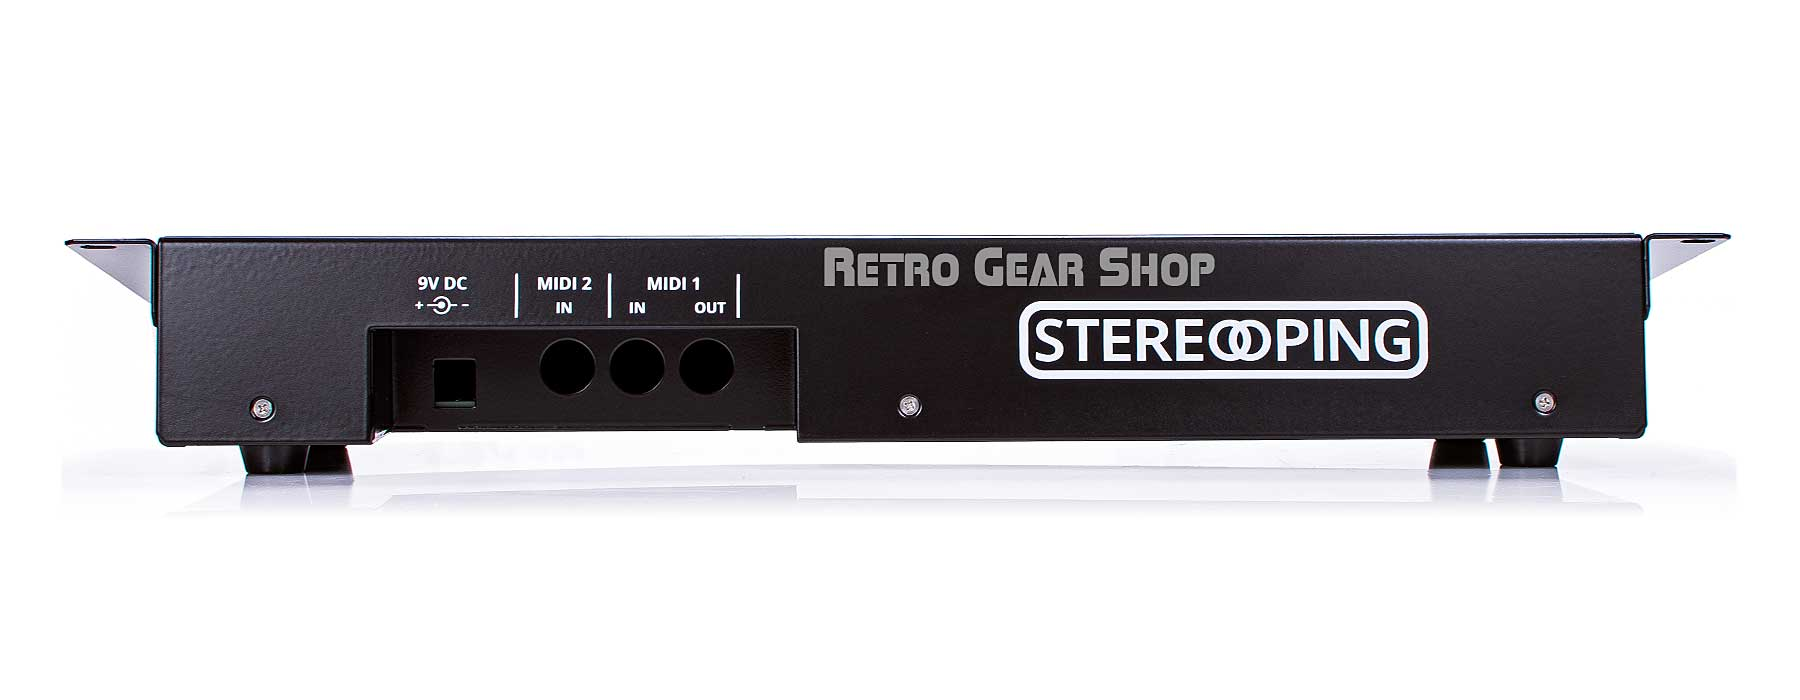 Stereoping Programmer DIY Kit Rear